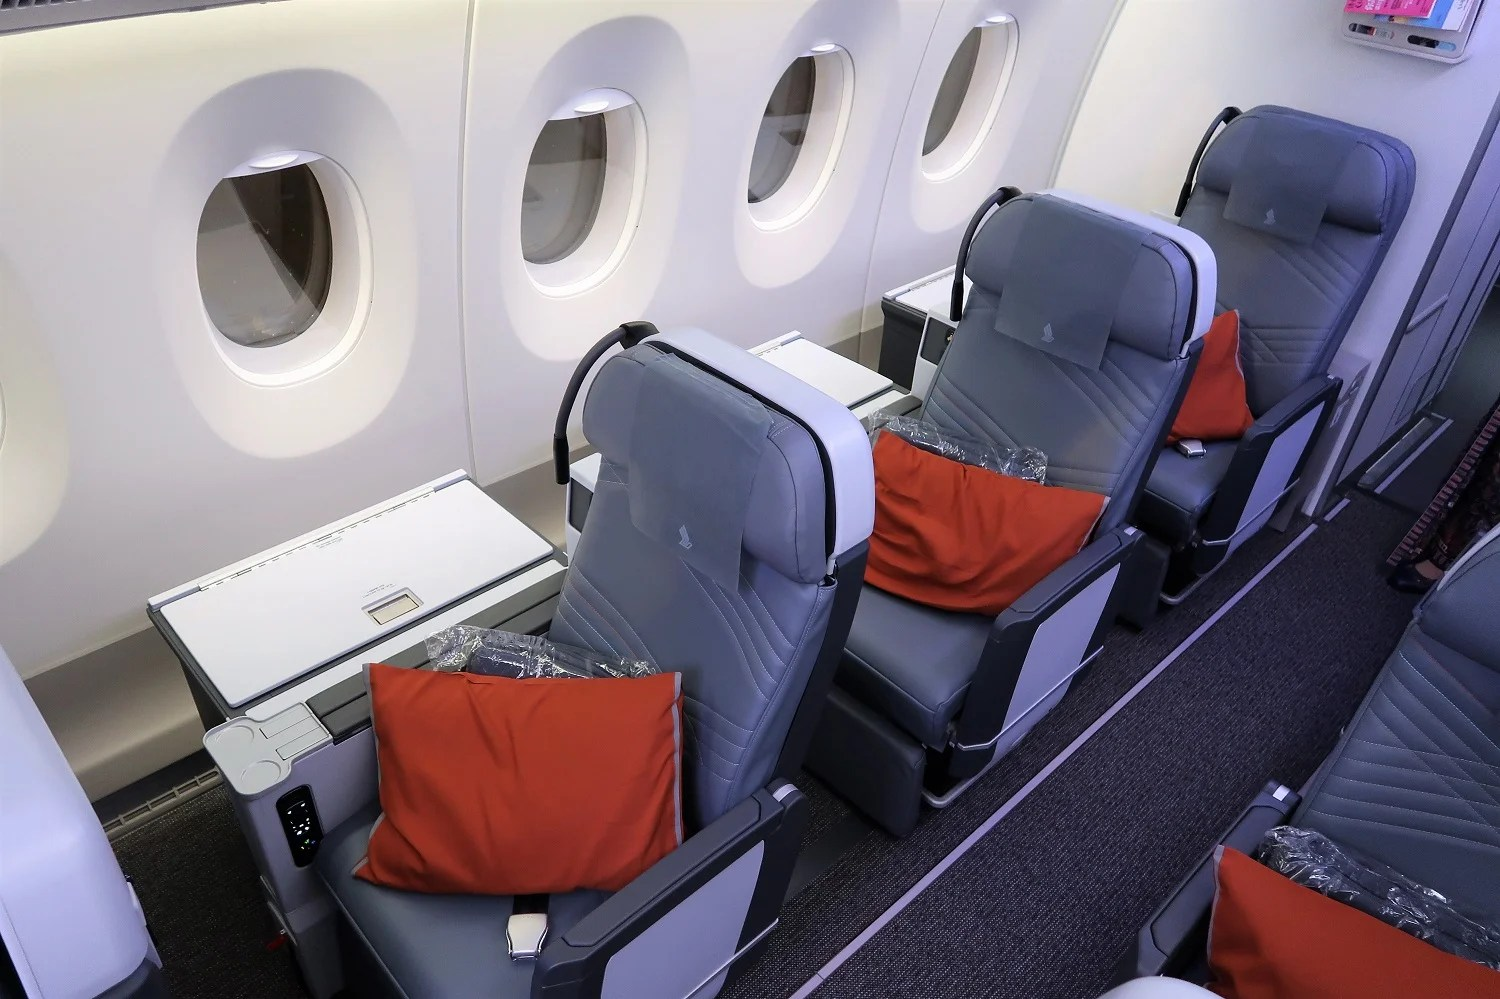 Deal Alert: Singapore Airlines Premium Economy to Asia From $1049 Round-Trip